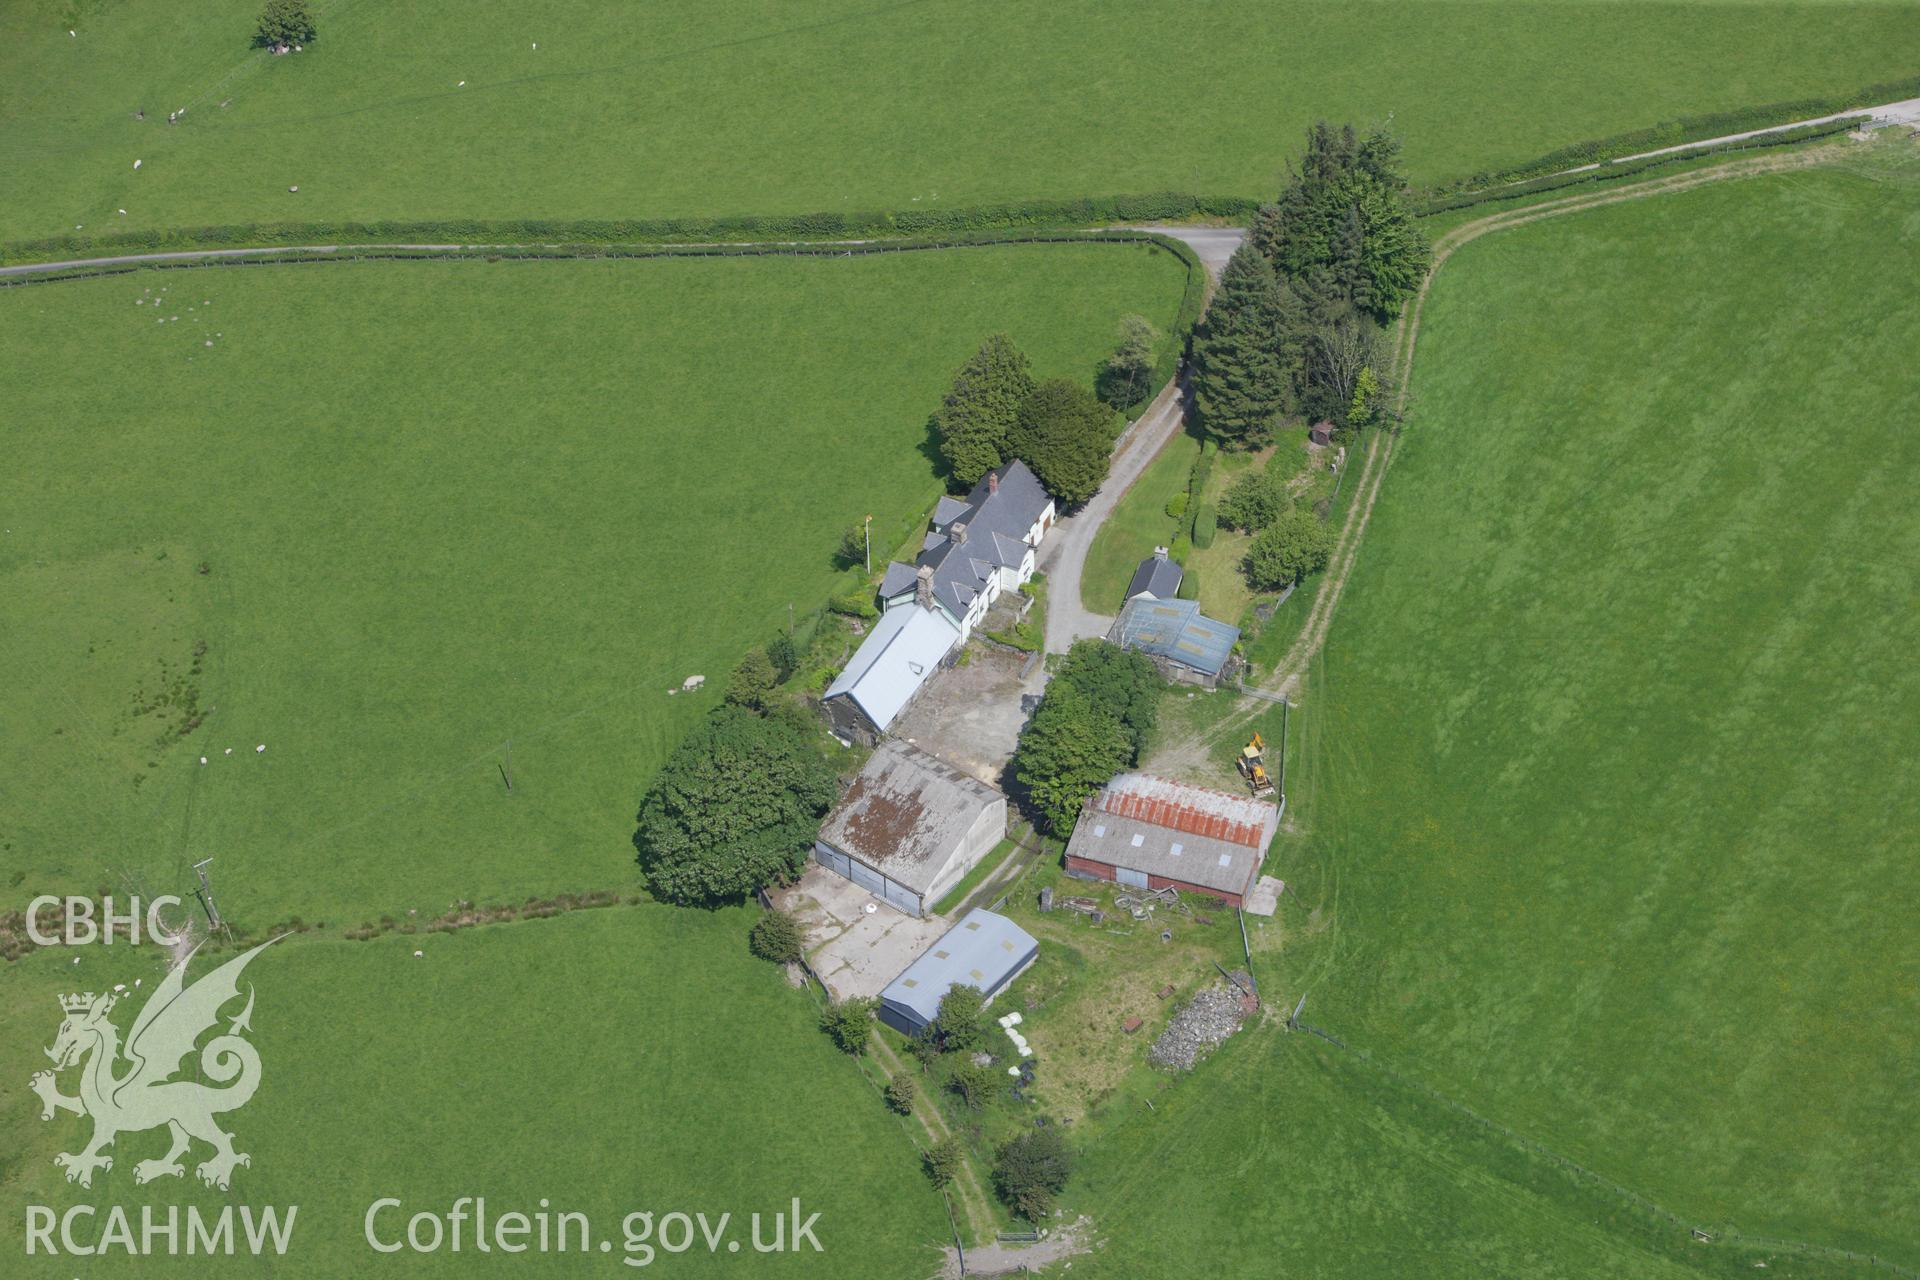 RCAHMW colour oblique aerial photograph of Cefn Caer Roman Fort, Pennal. Taken on 02 June 2009 by Toby Driver